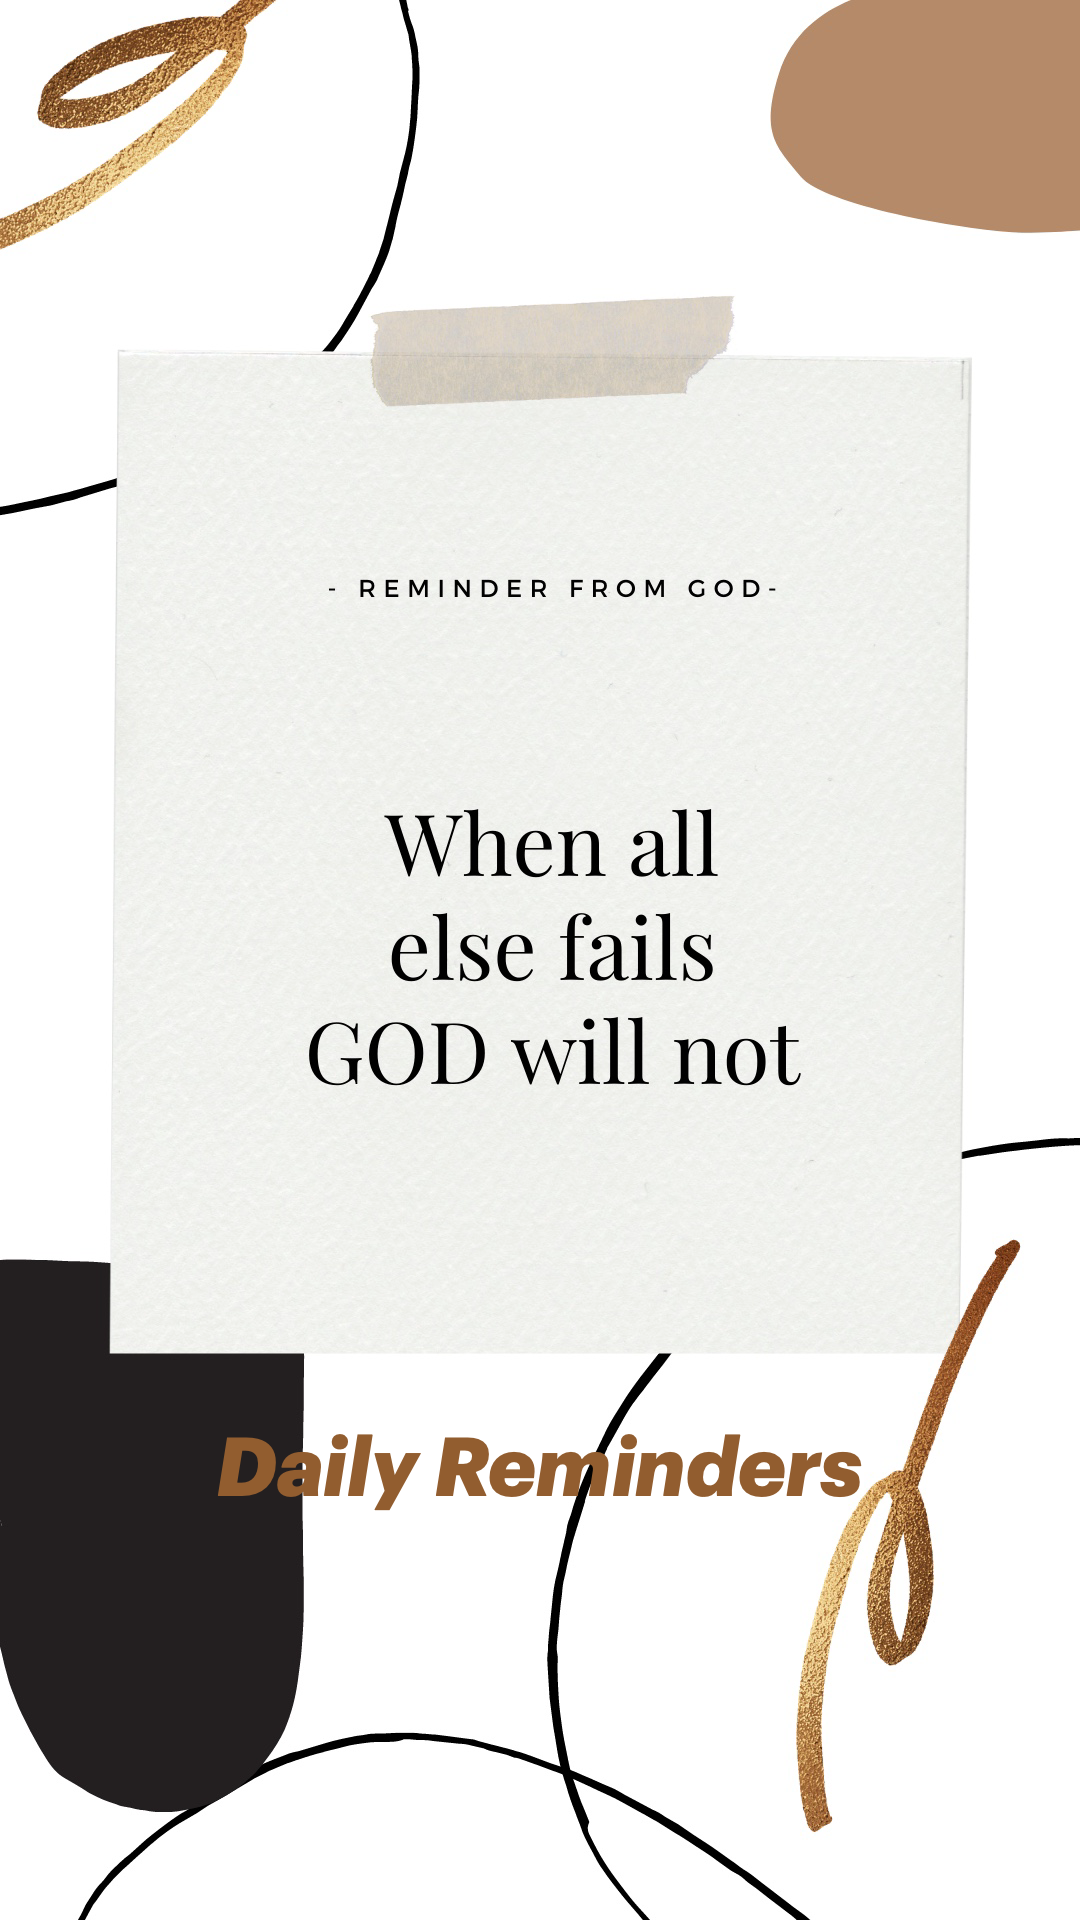 Faith Daily Reminders An immersive guide by expressions bracelets ...